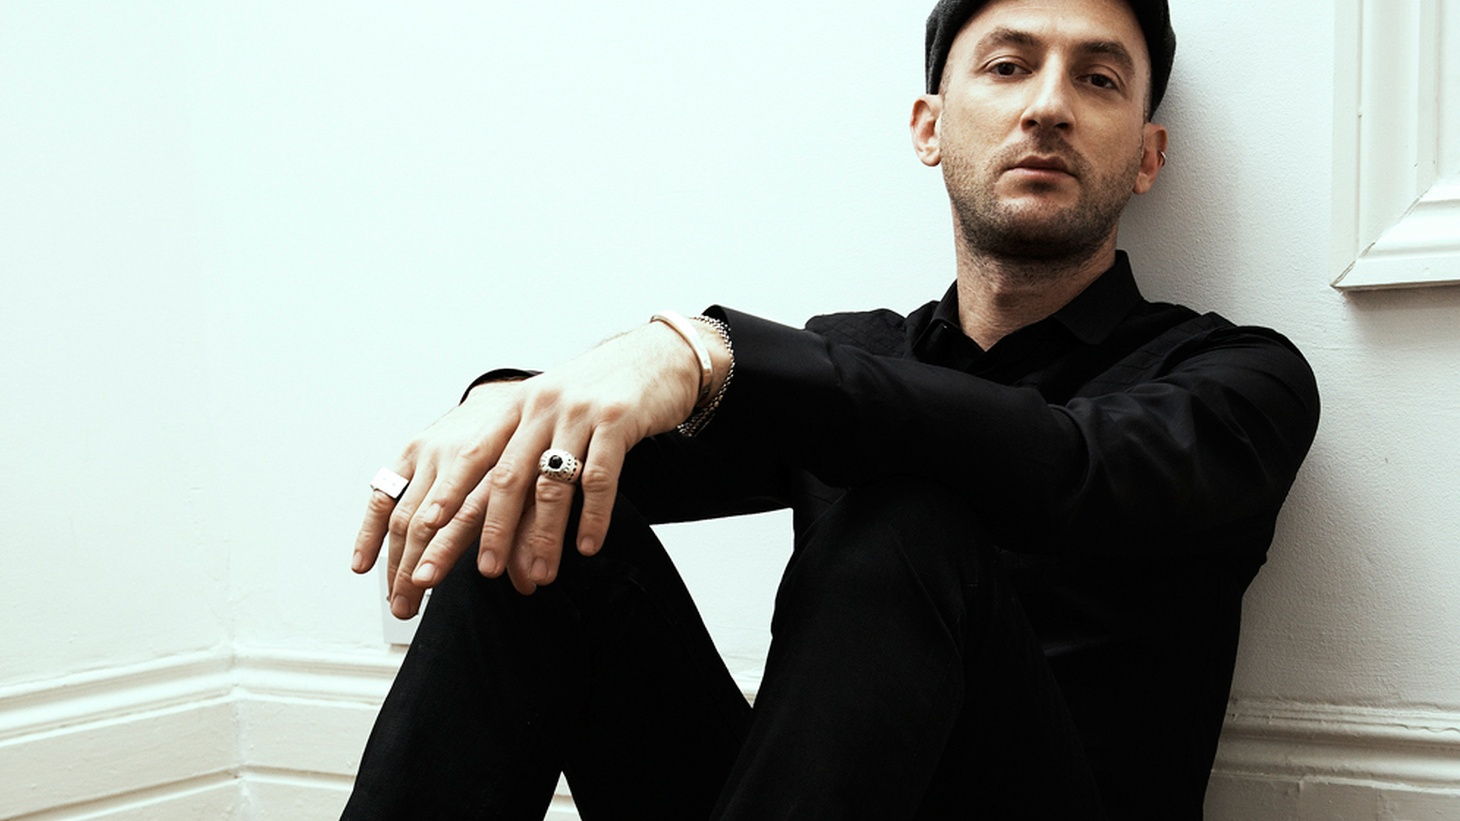 Underground champion Damian Lazarus stops by Metropolis to talk about his latest release and the cultural implications of his brand of world Music.